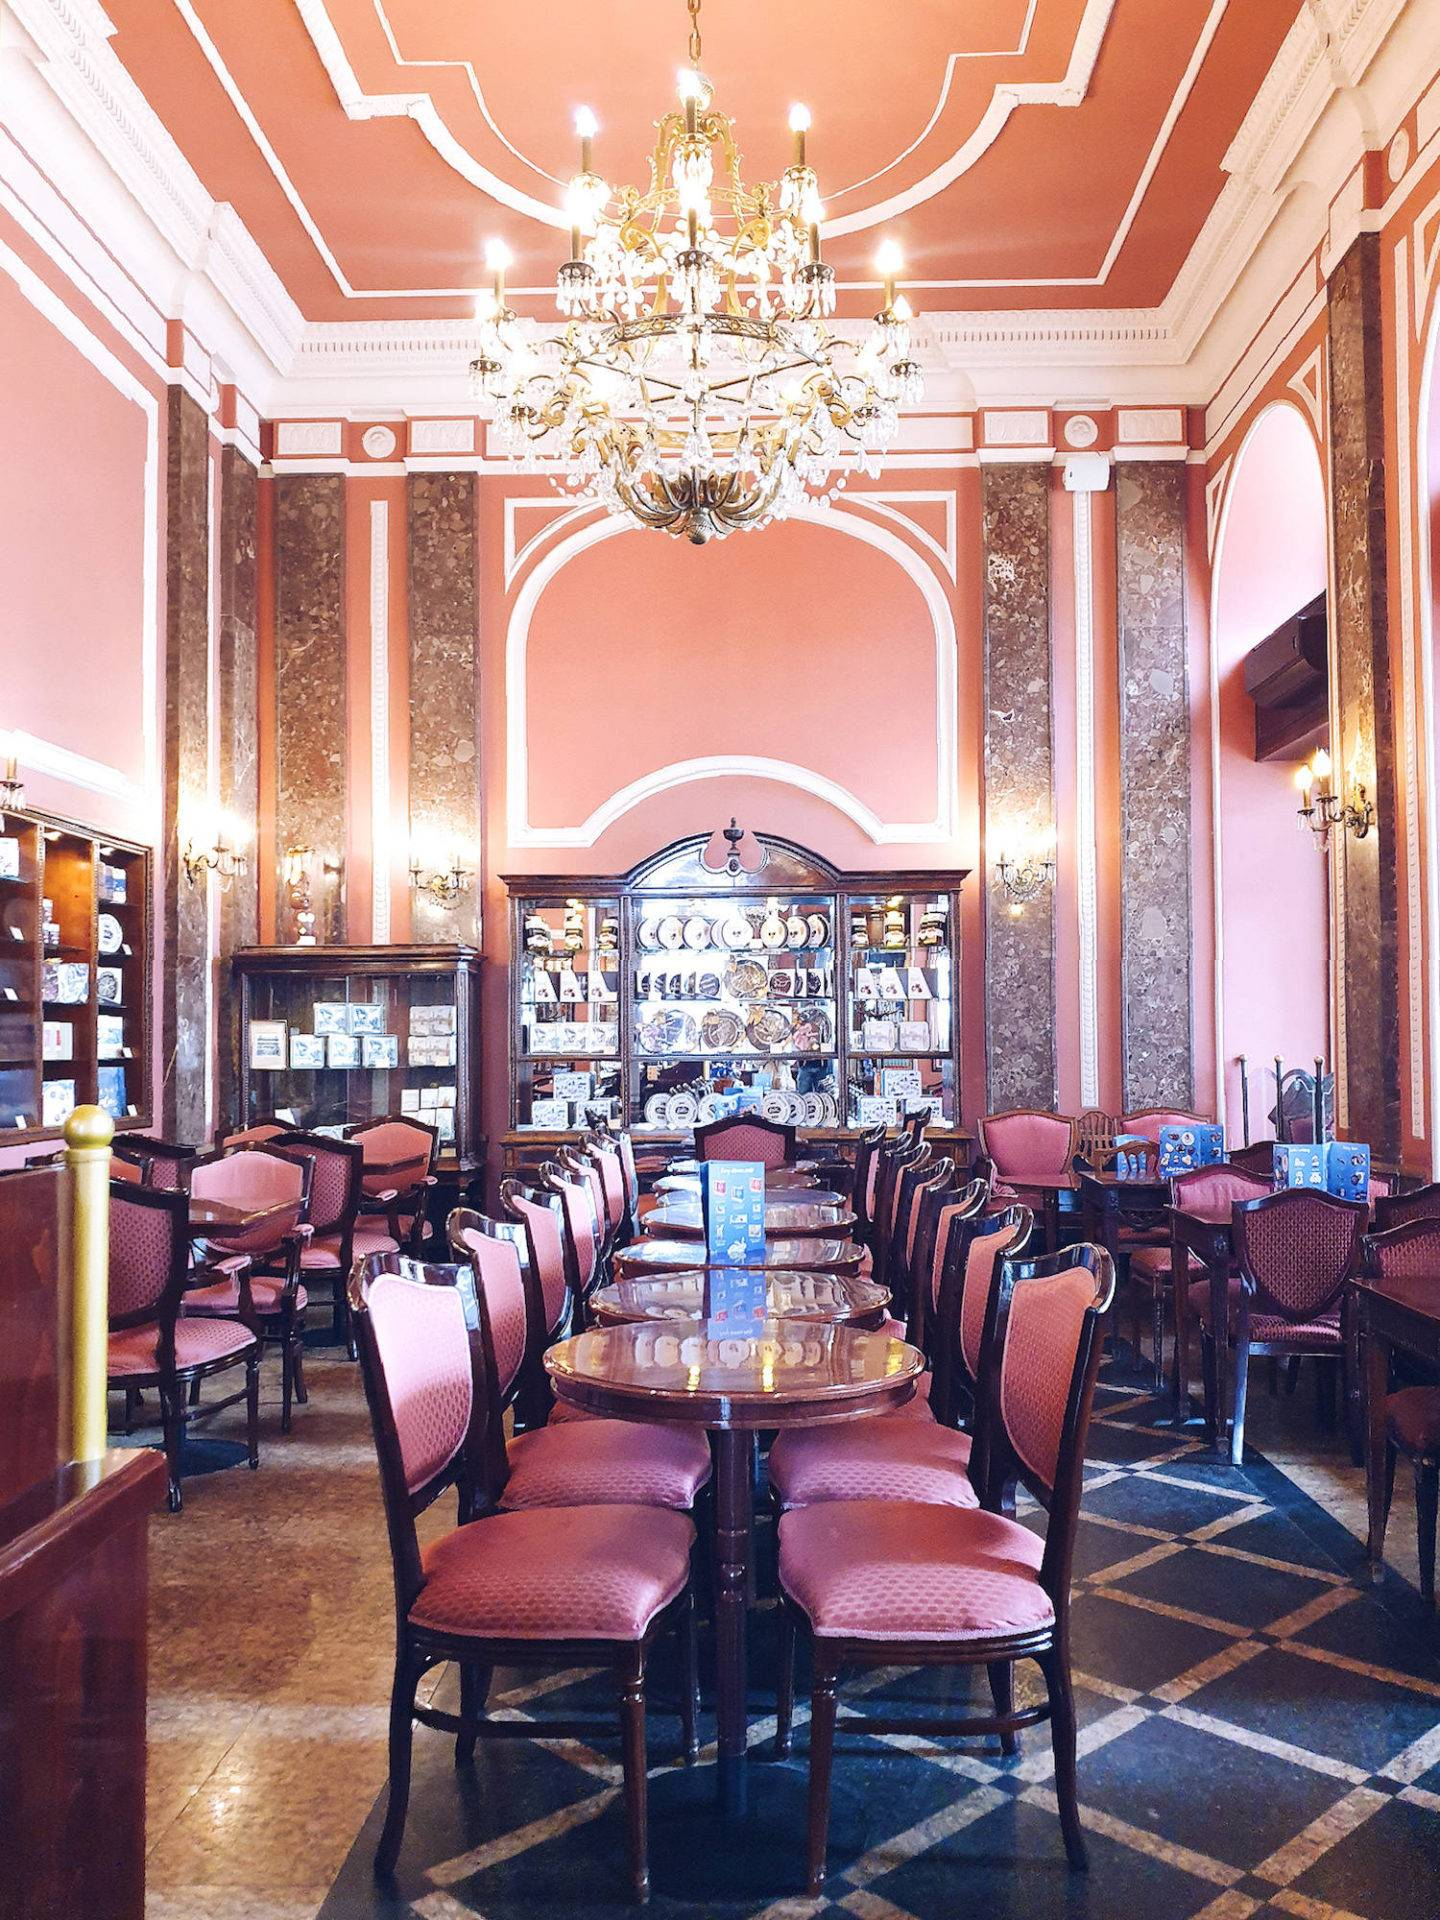 E.Wedel Chocolate Lounge in Warsaw